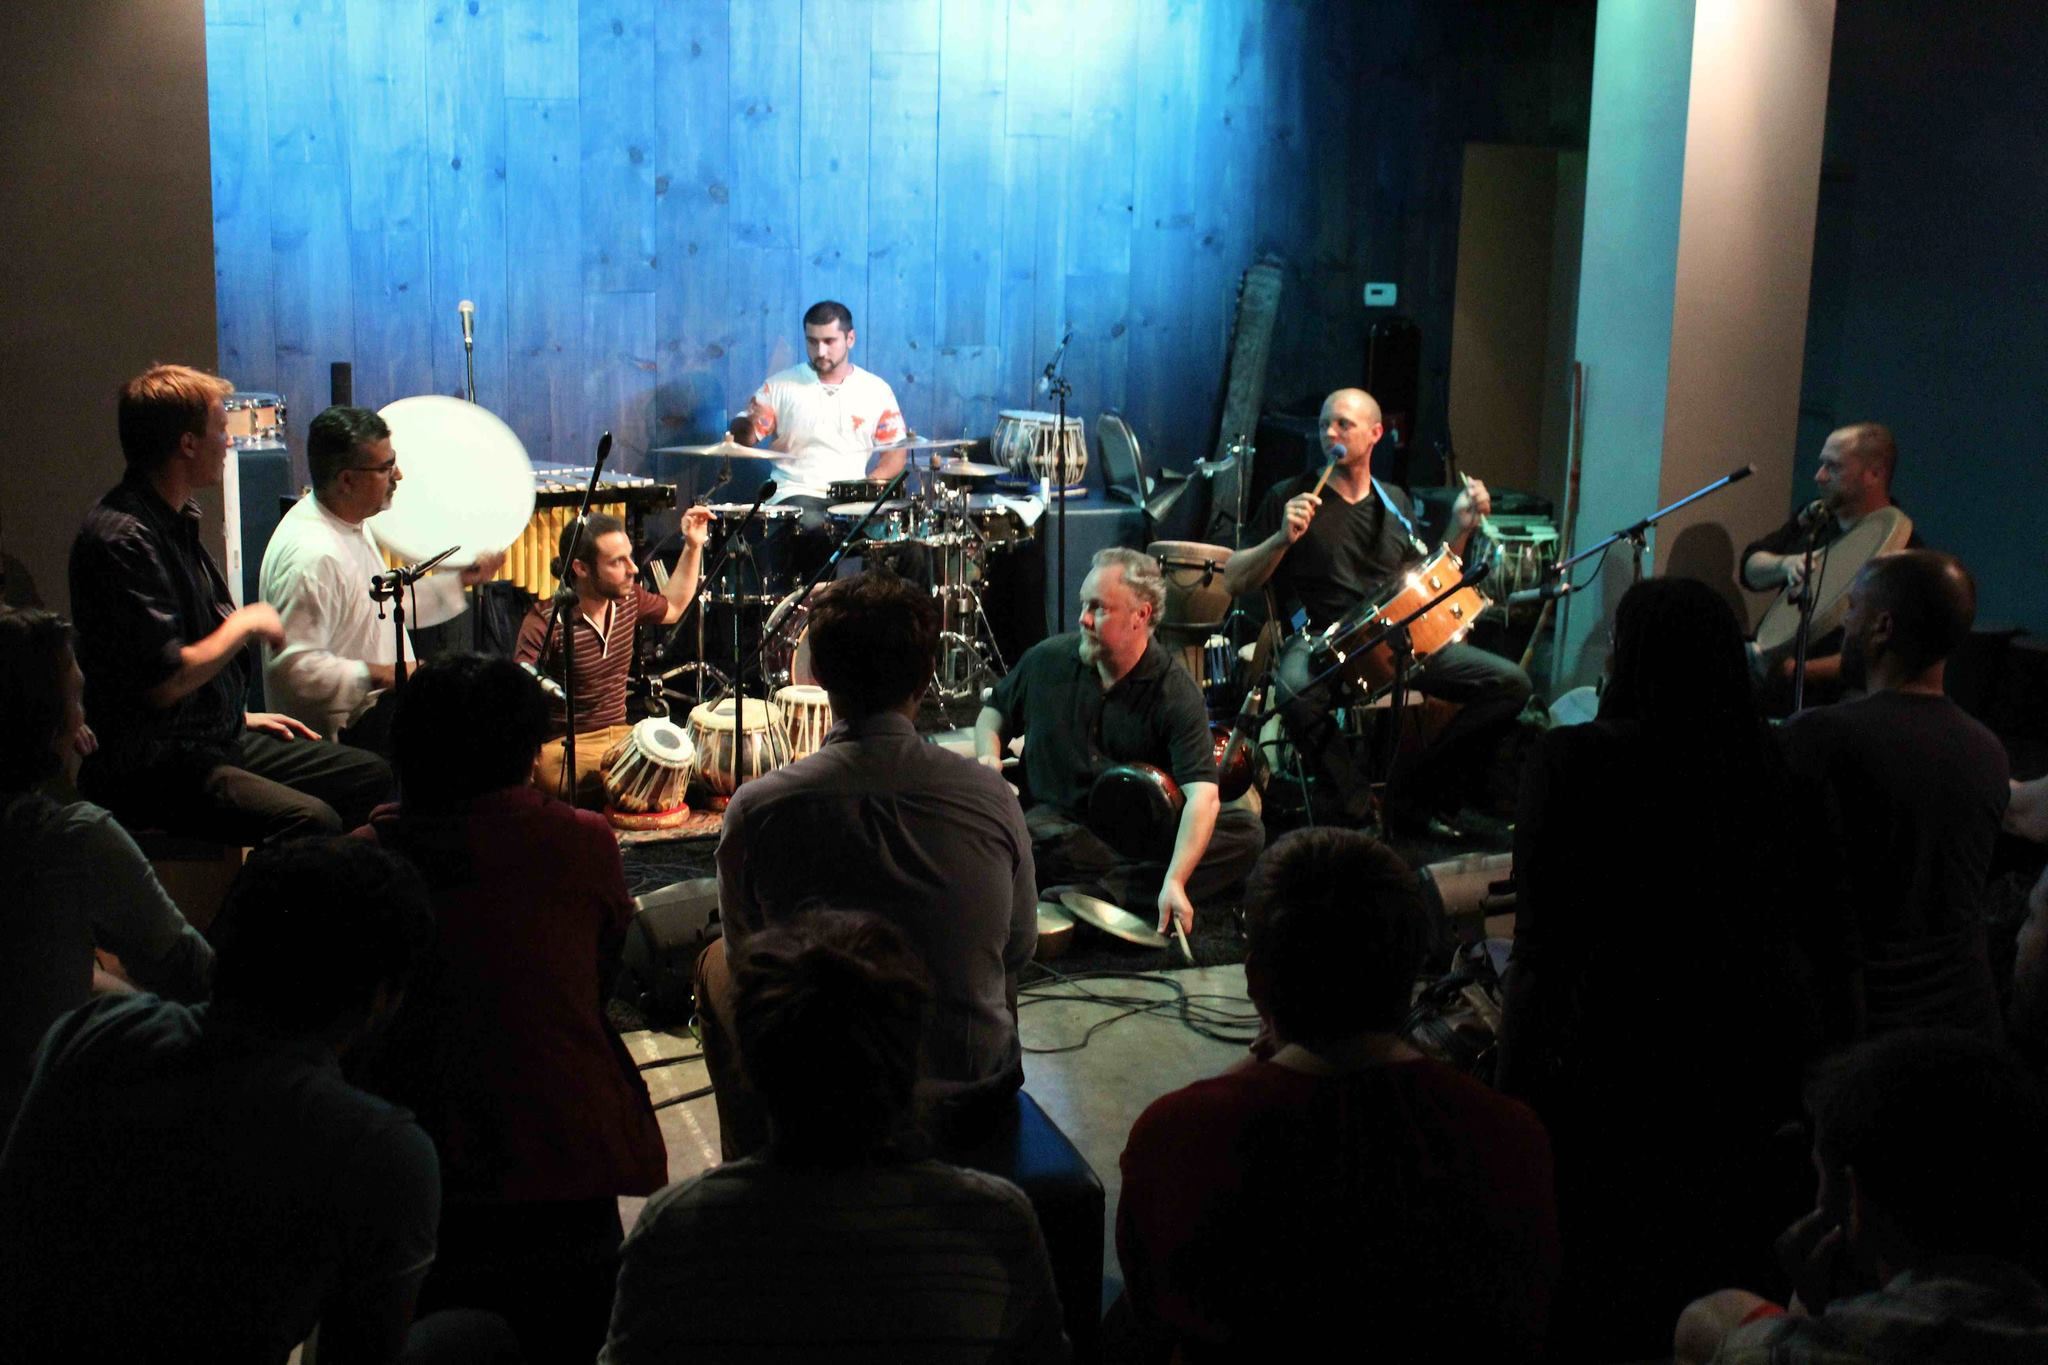 Hands On'Semble with Houman Pourmehdi and Rhein Percussion  at the Blue Whale, Los Angeles CA Sept 7th 2013.